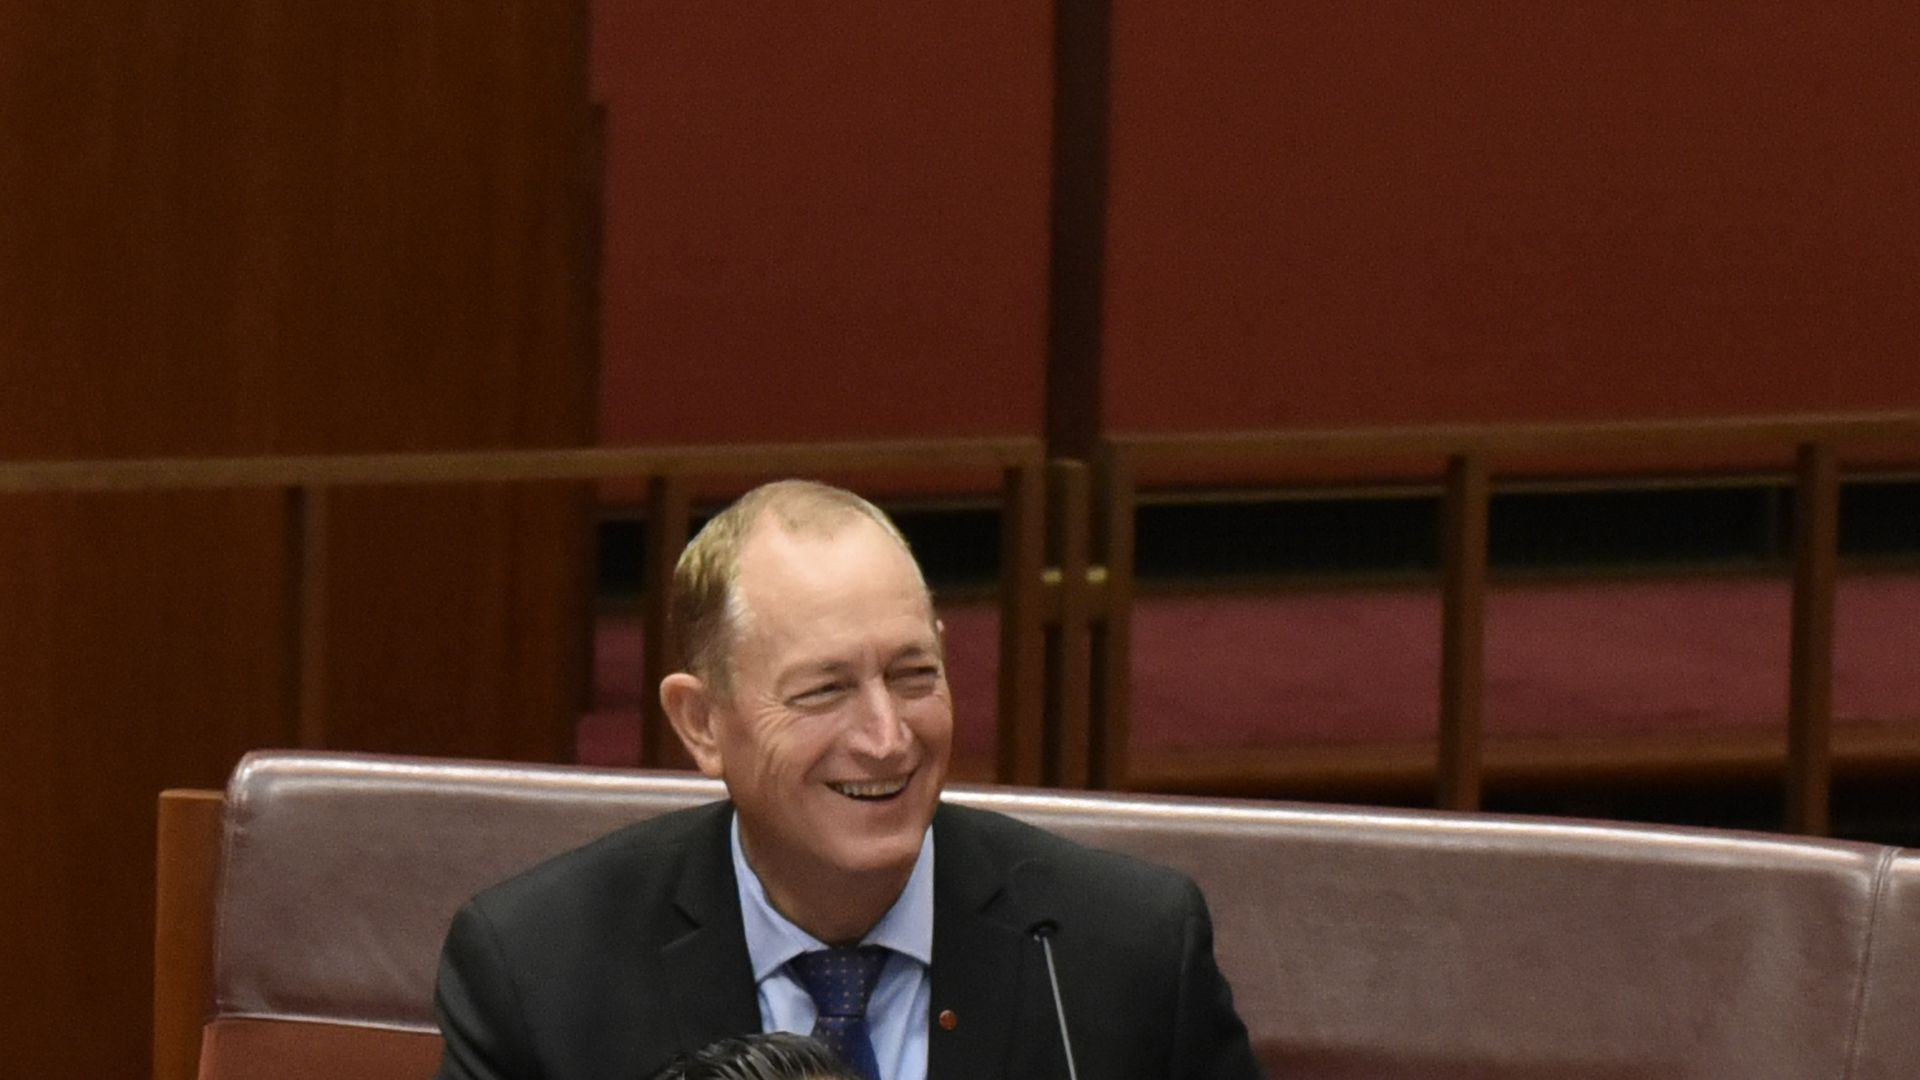 Fraser Anning won't apologize for his controversial behavior.